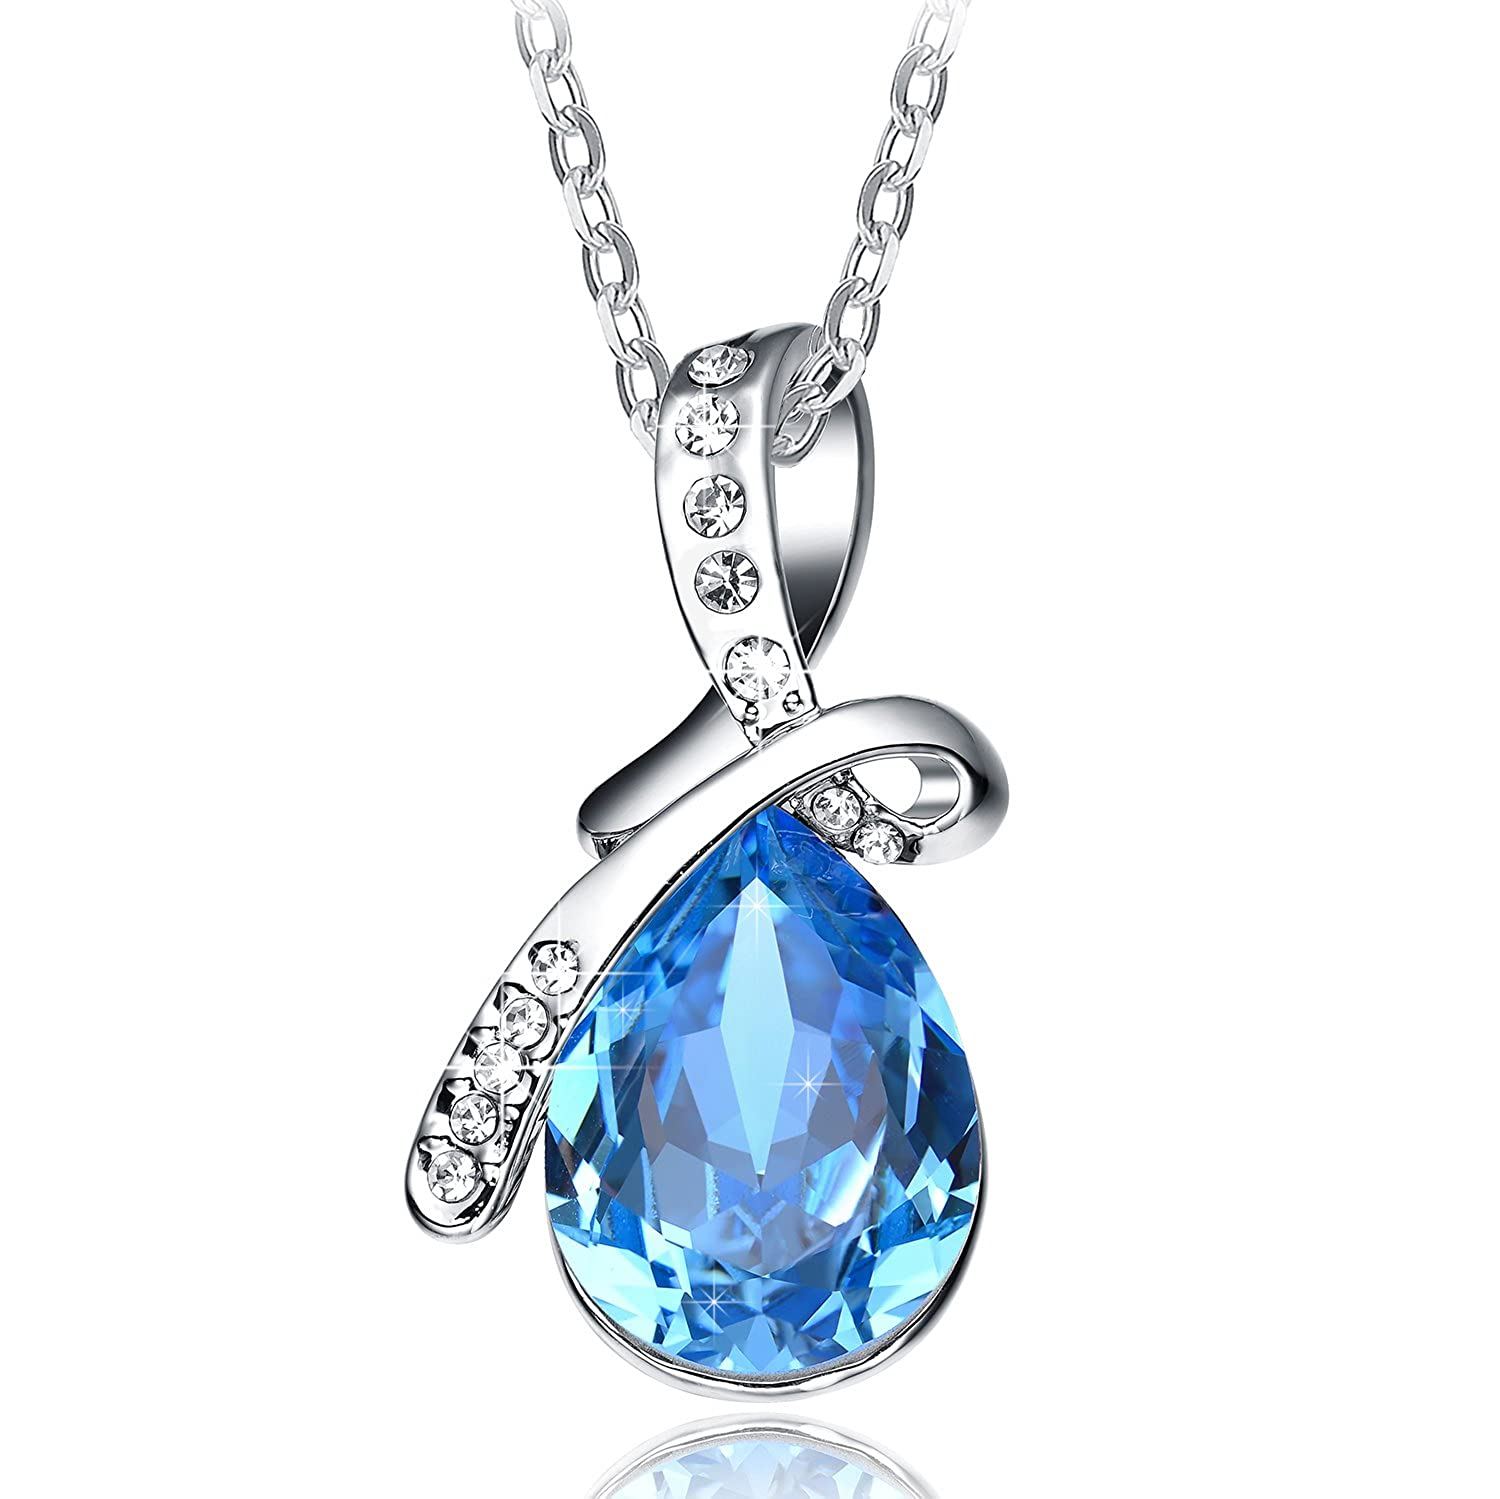 Mothers day gift sapphire blue crystal pendant necklace womens neemoda mozeypictures Choice Image